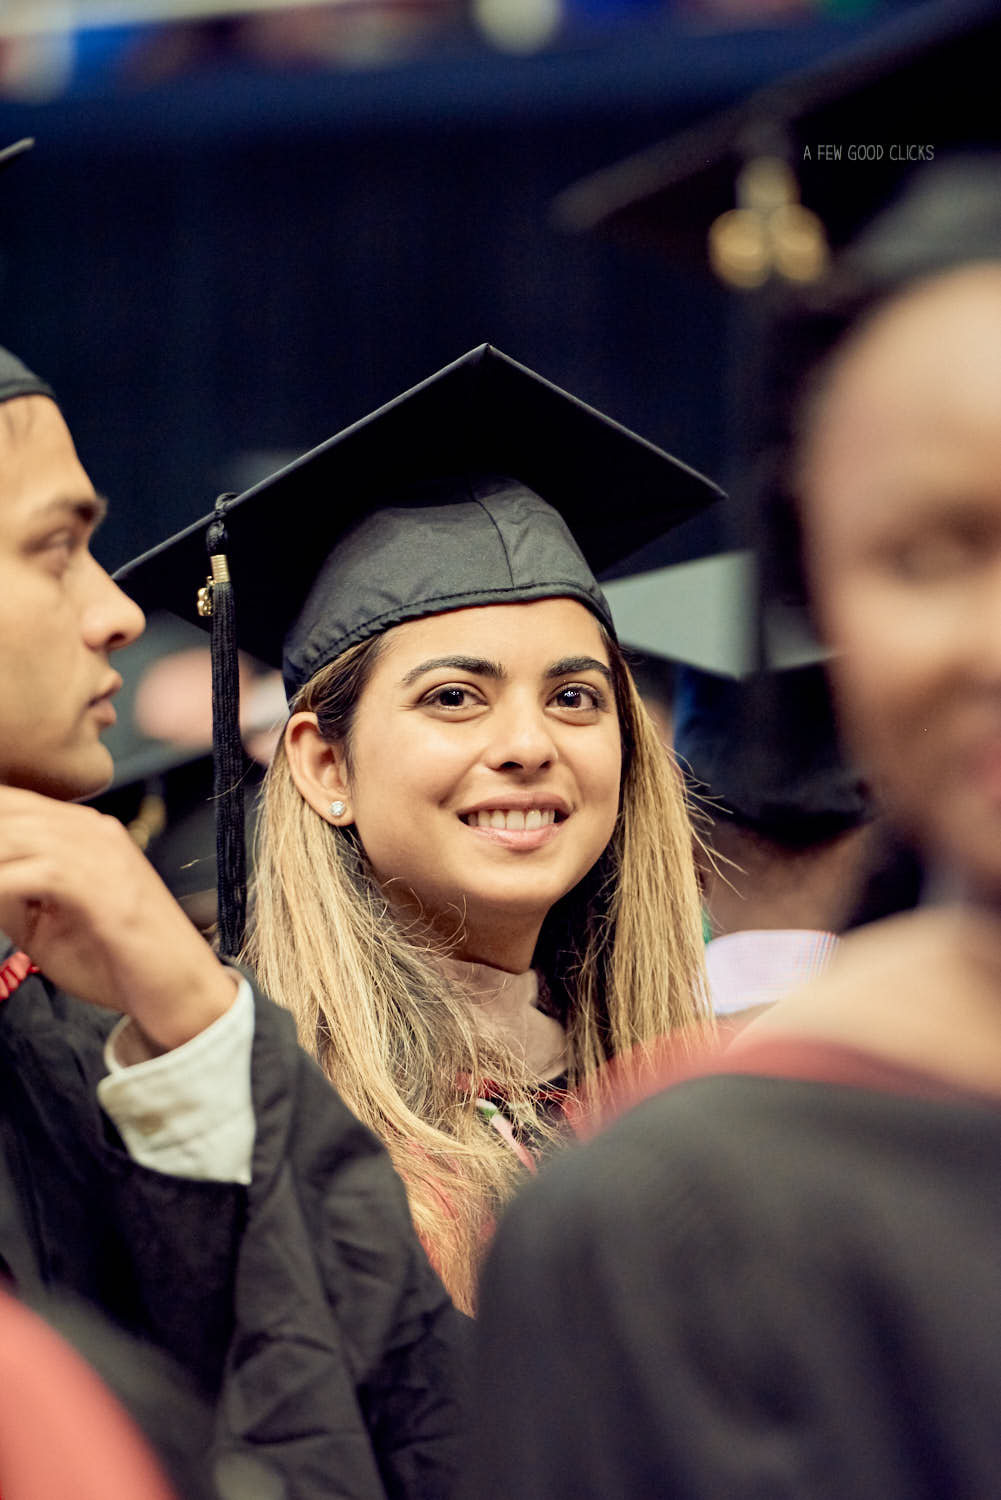 Isha-ambani-stanford-graduation-ceremony-photography-by-a-few-good-clicks 54.jpg